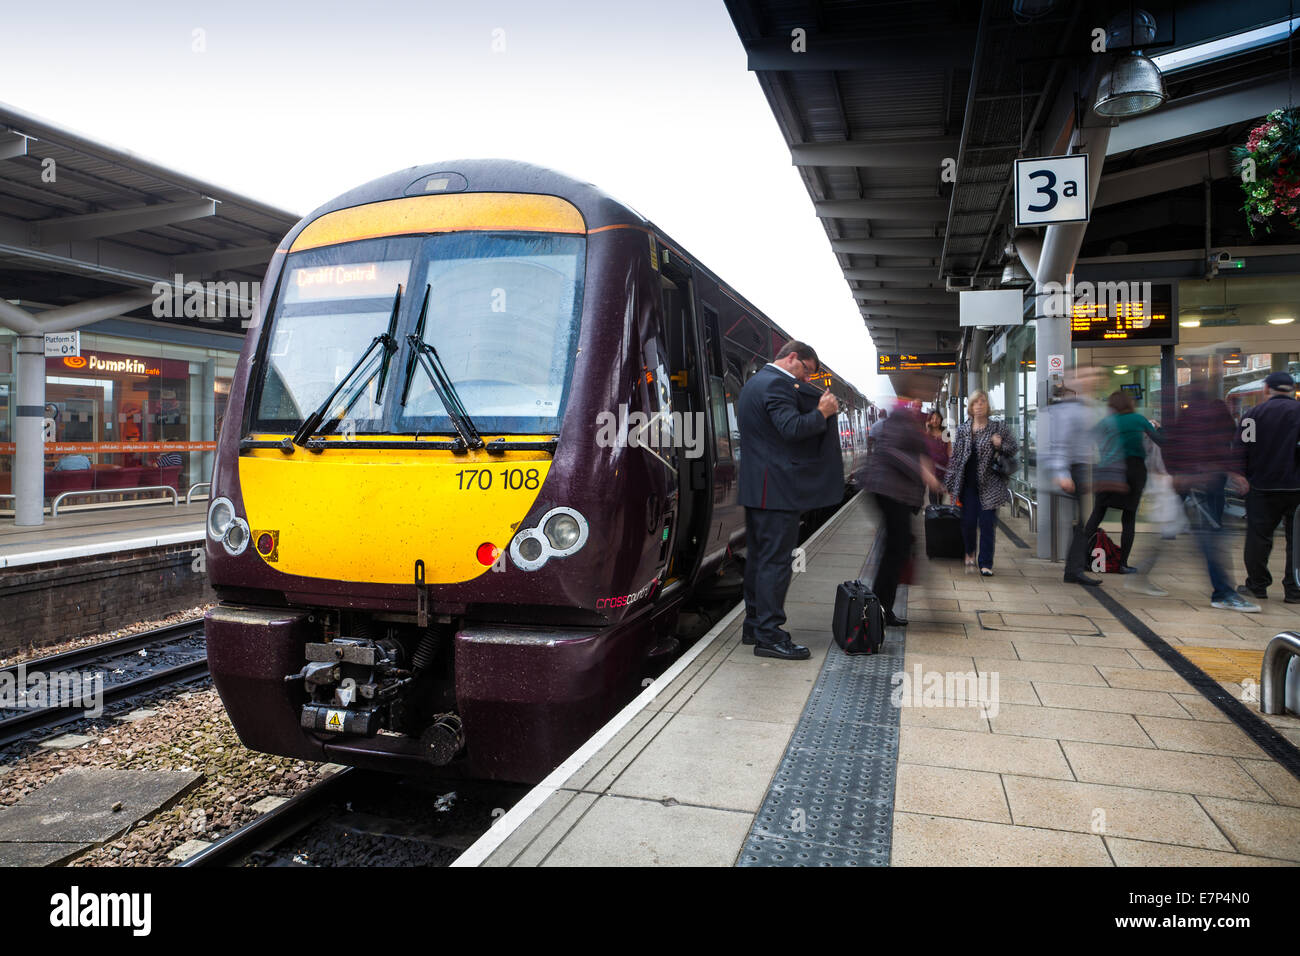 class-170-108-east-midlands-crosscountry